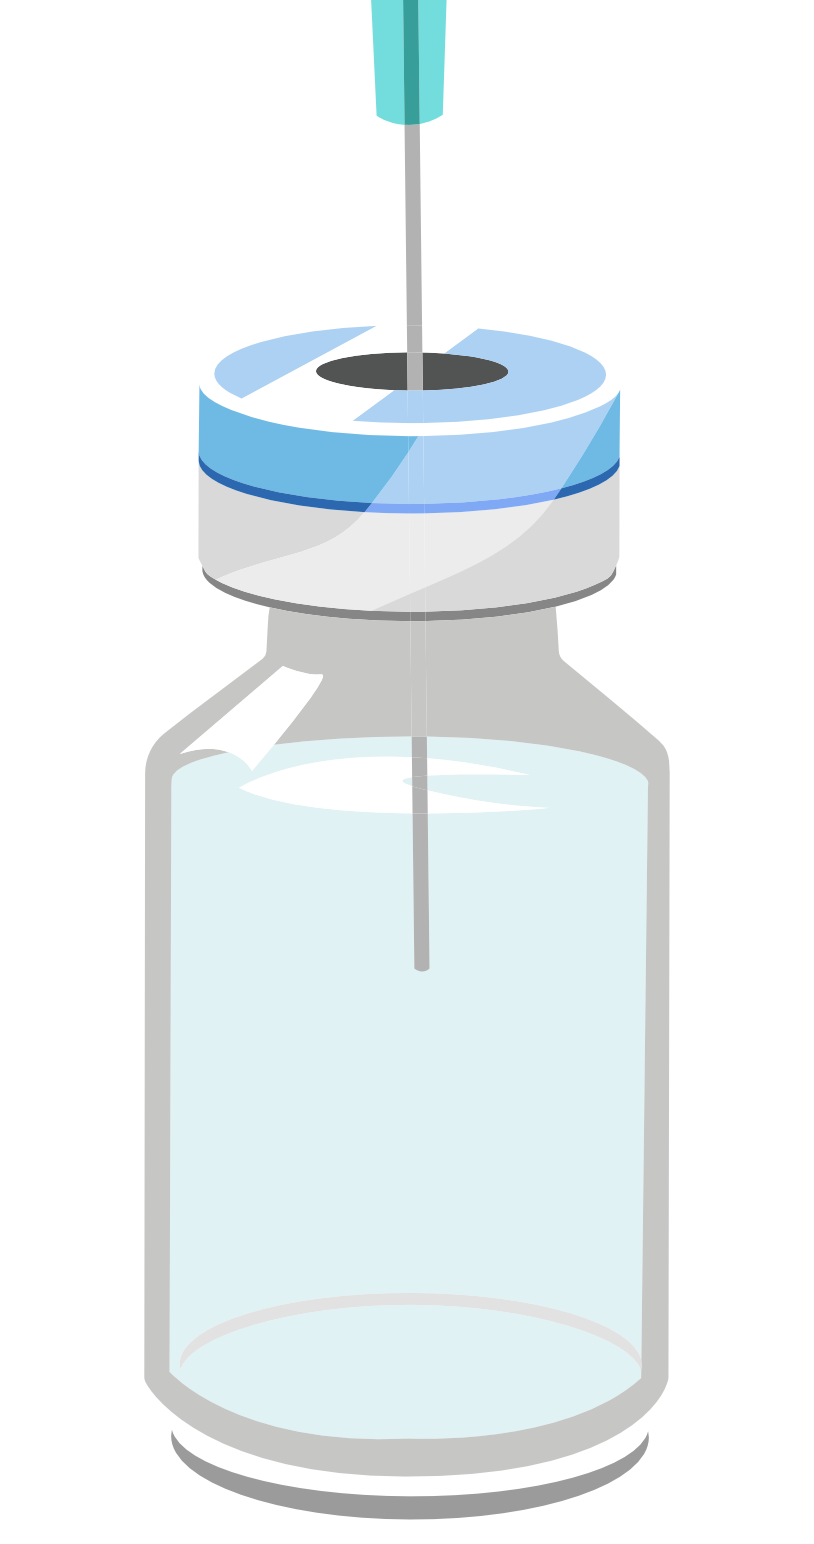 Bottle containing liquid with syringe